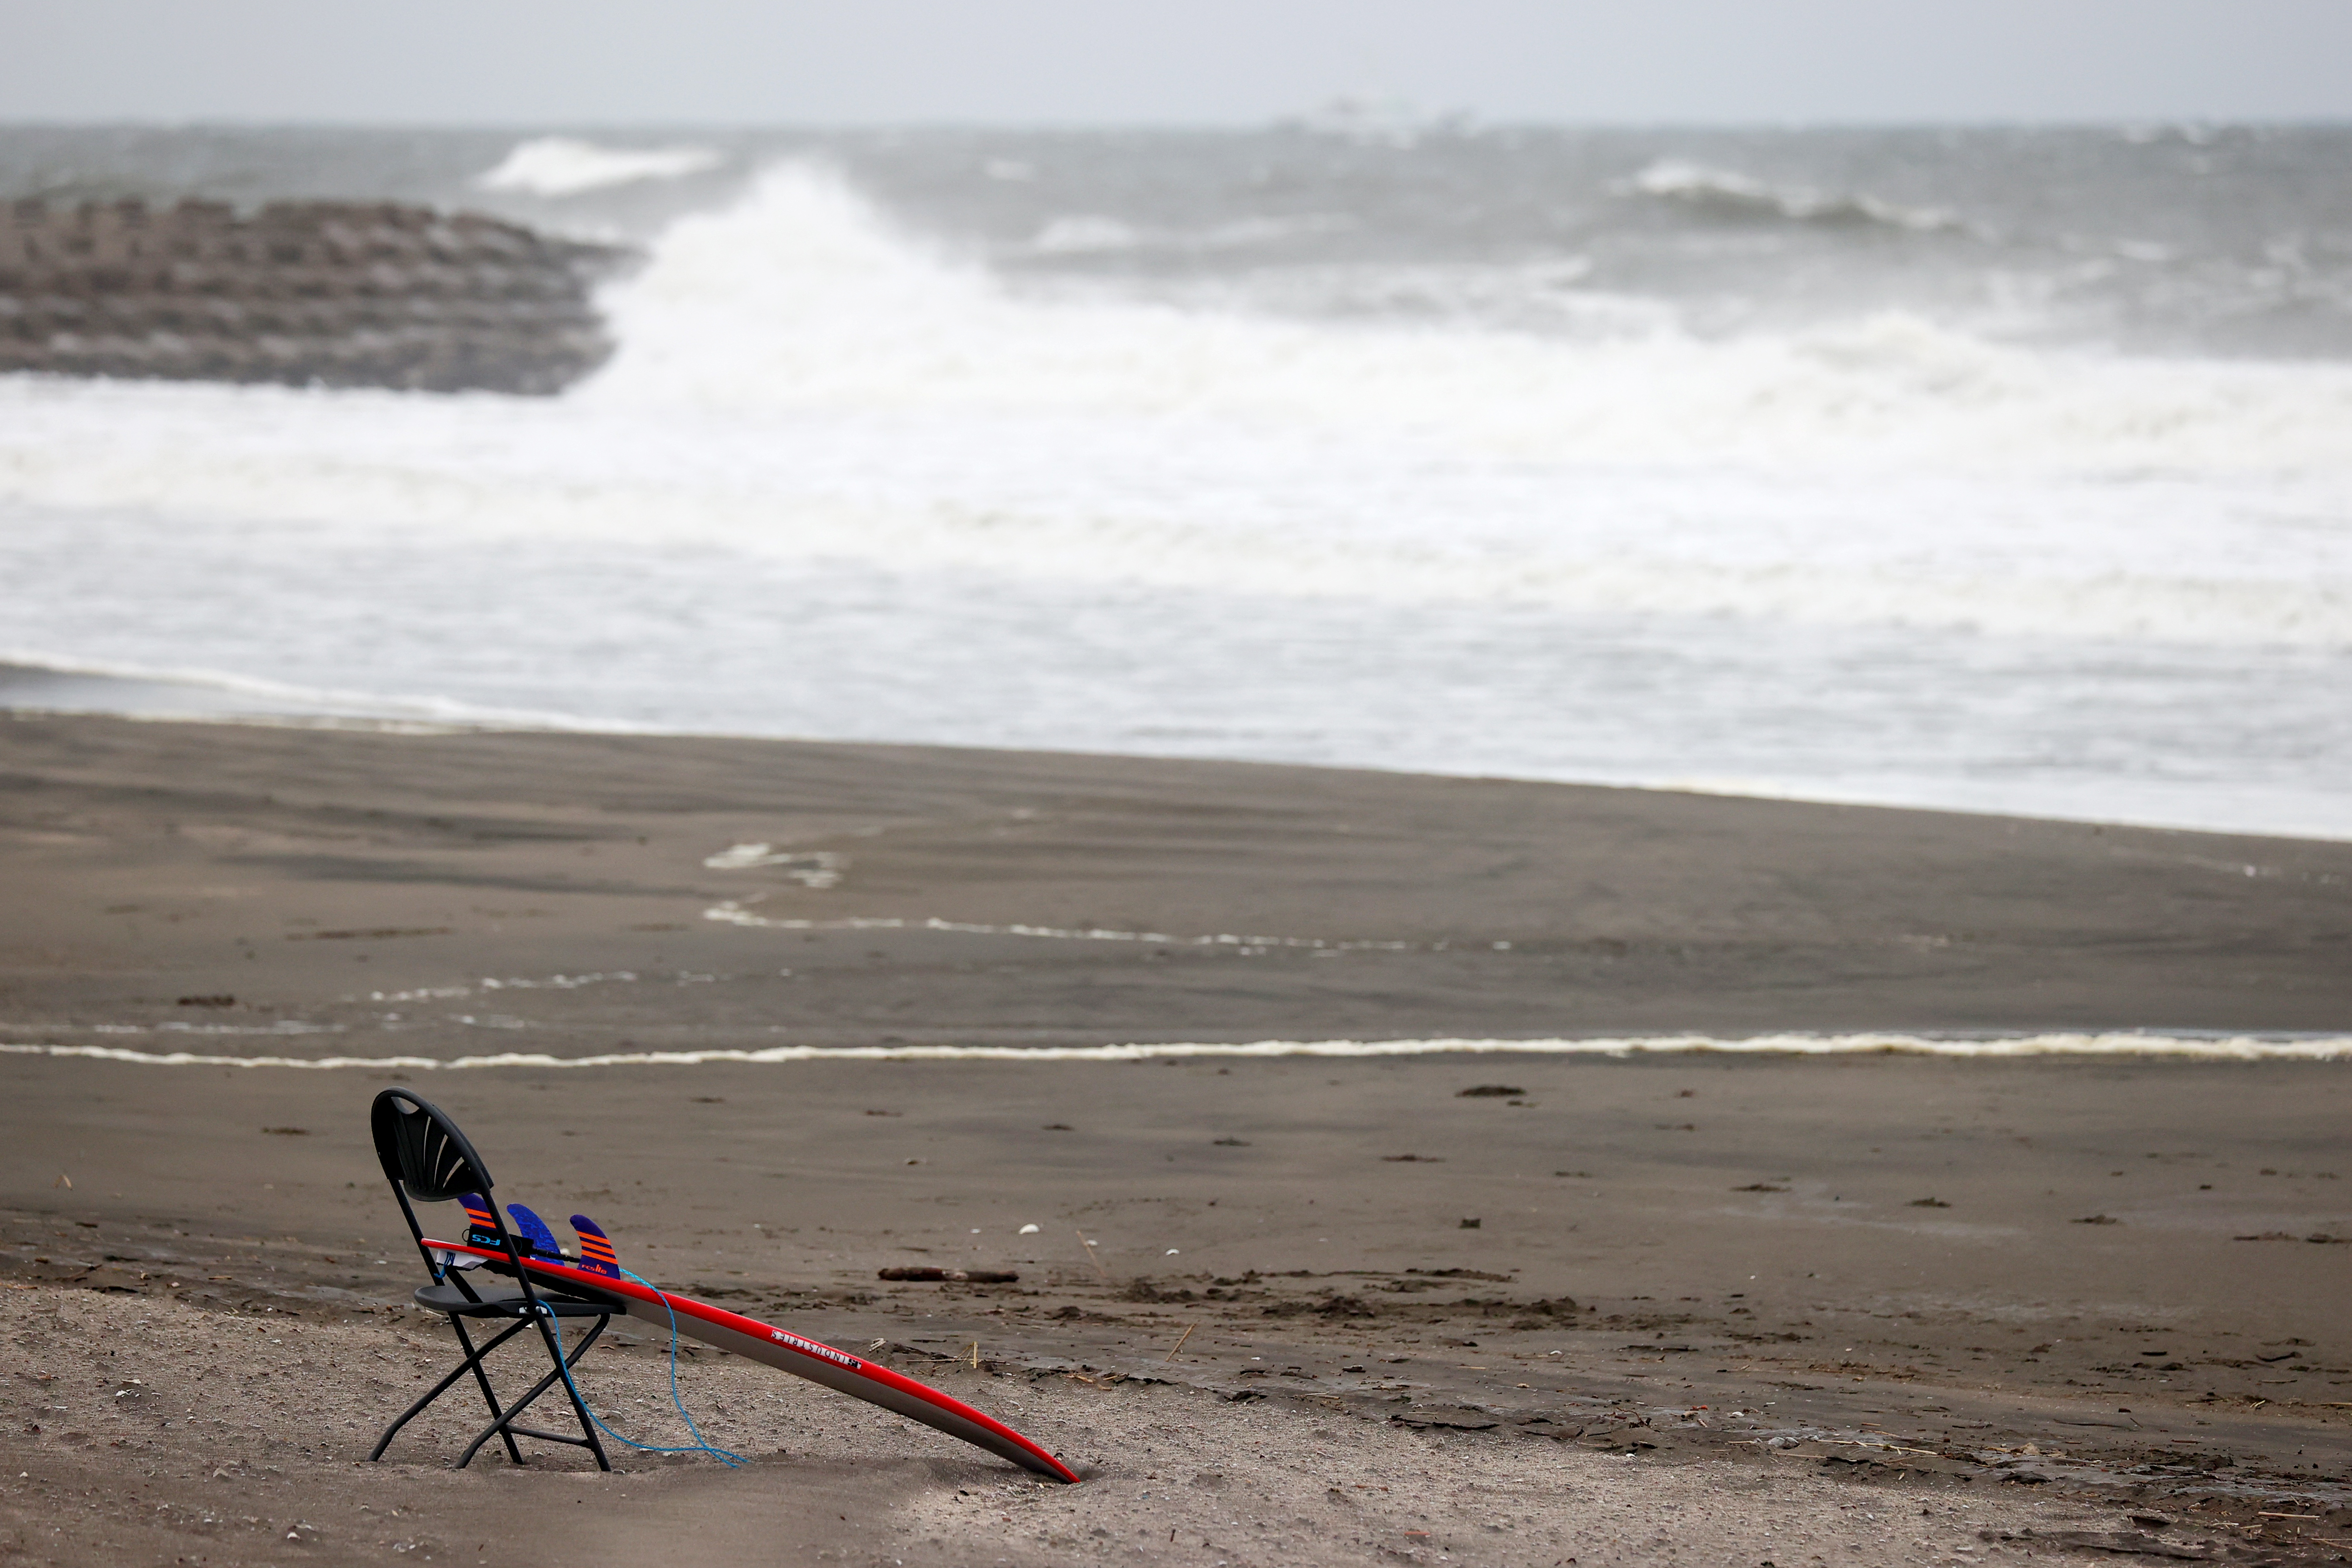 Tokyo 2020 Olympics - Surfing - Men's Shortboard - Round 3 - Tsurigasaki Surfing Beach, Tokyo, Japan - July 26, 2021. General view of a surfboard leant on a chair REUTERS/Lisi Niesner